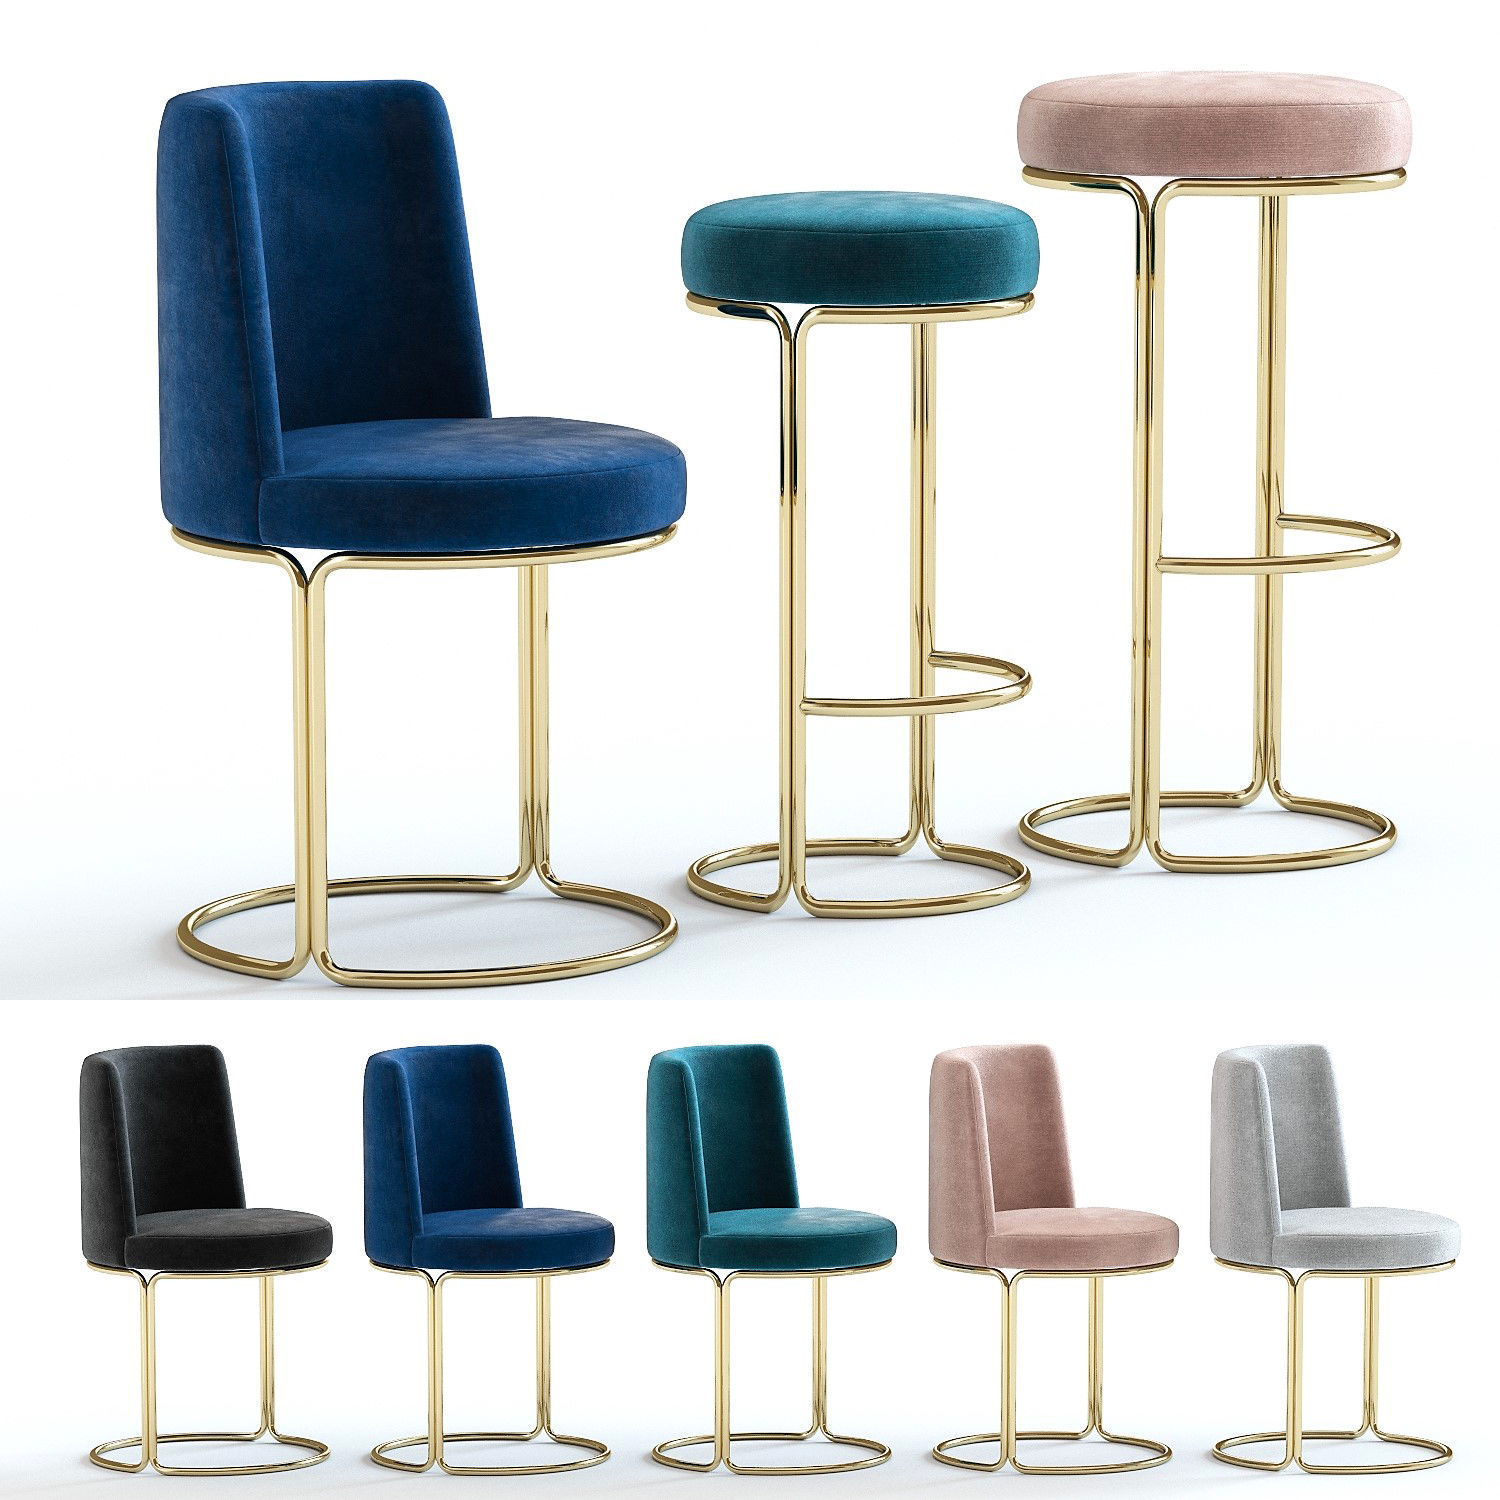 West Elm Cora Chairs